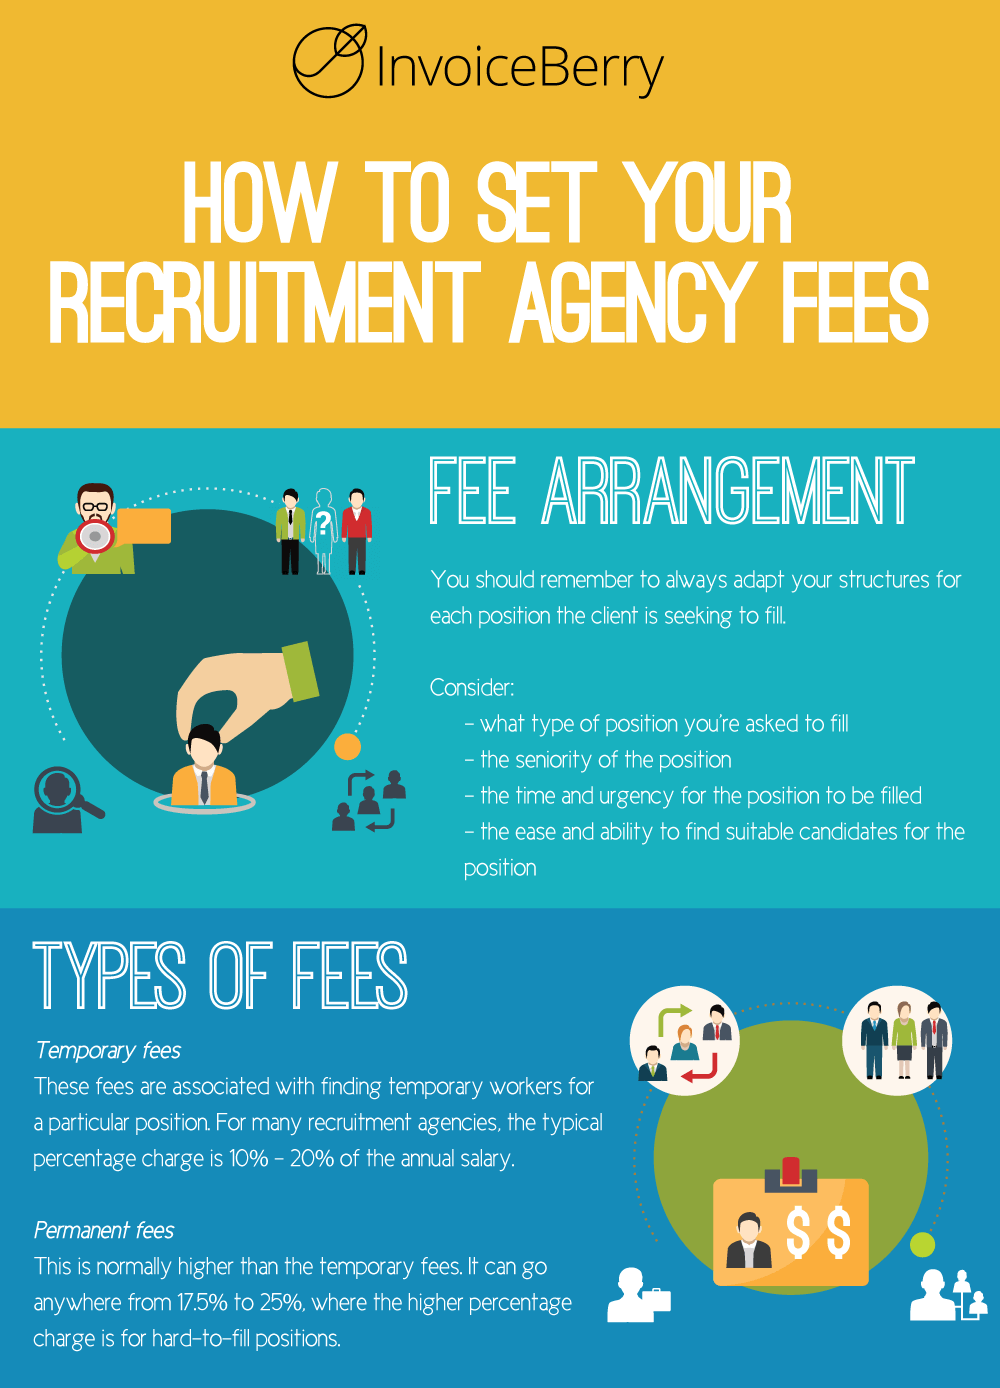 These are the best ways to set your fees for your recruitment agency